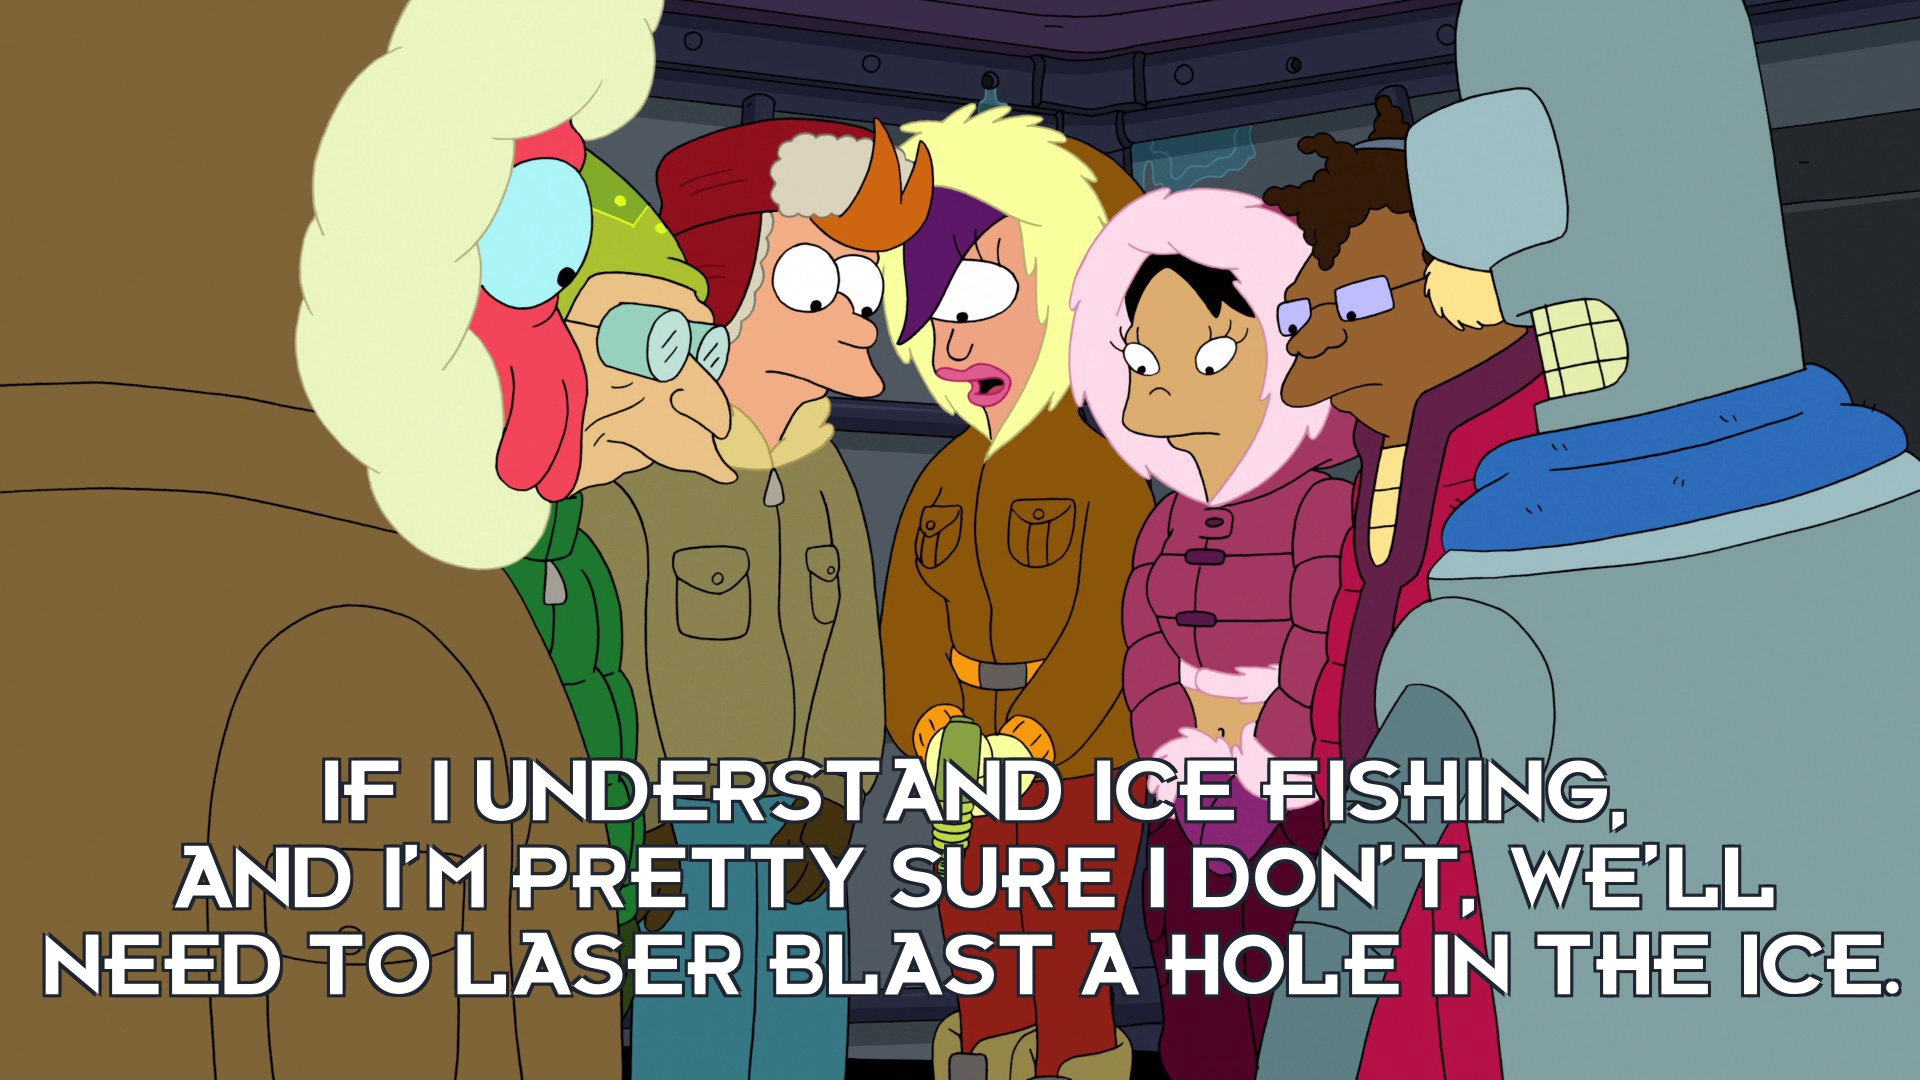 Turanga Leela: If I understand ice fishing, and I'm pretty sure I don't, we'll need to laser blast a hole in the ice.